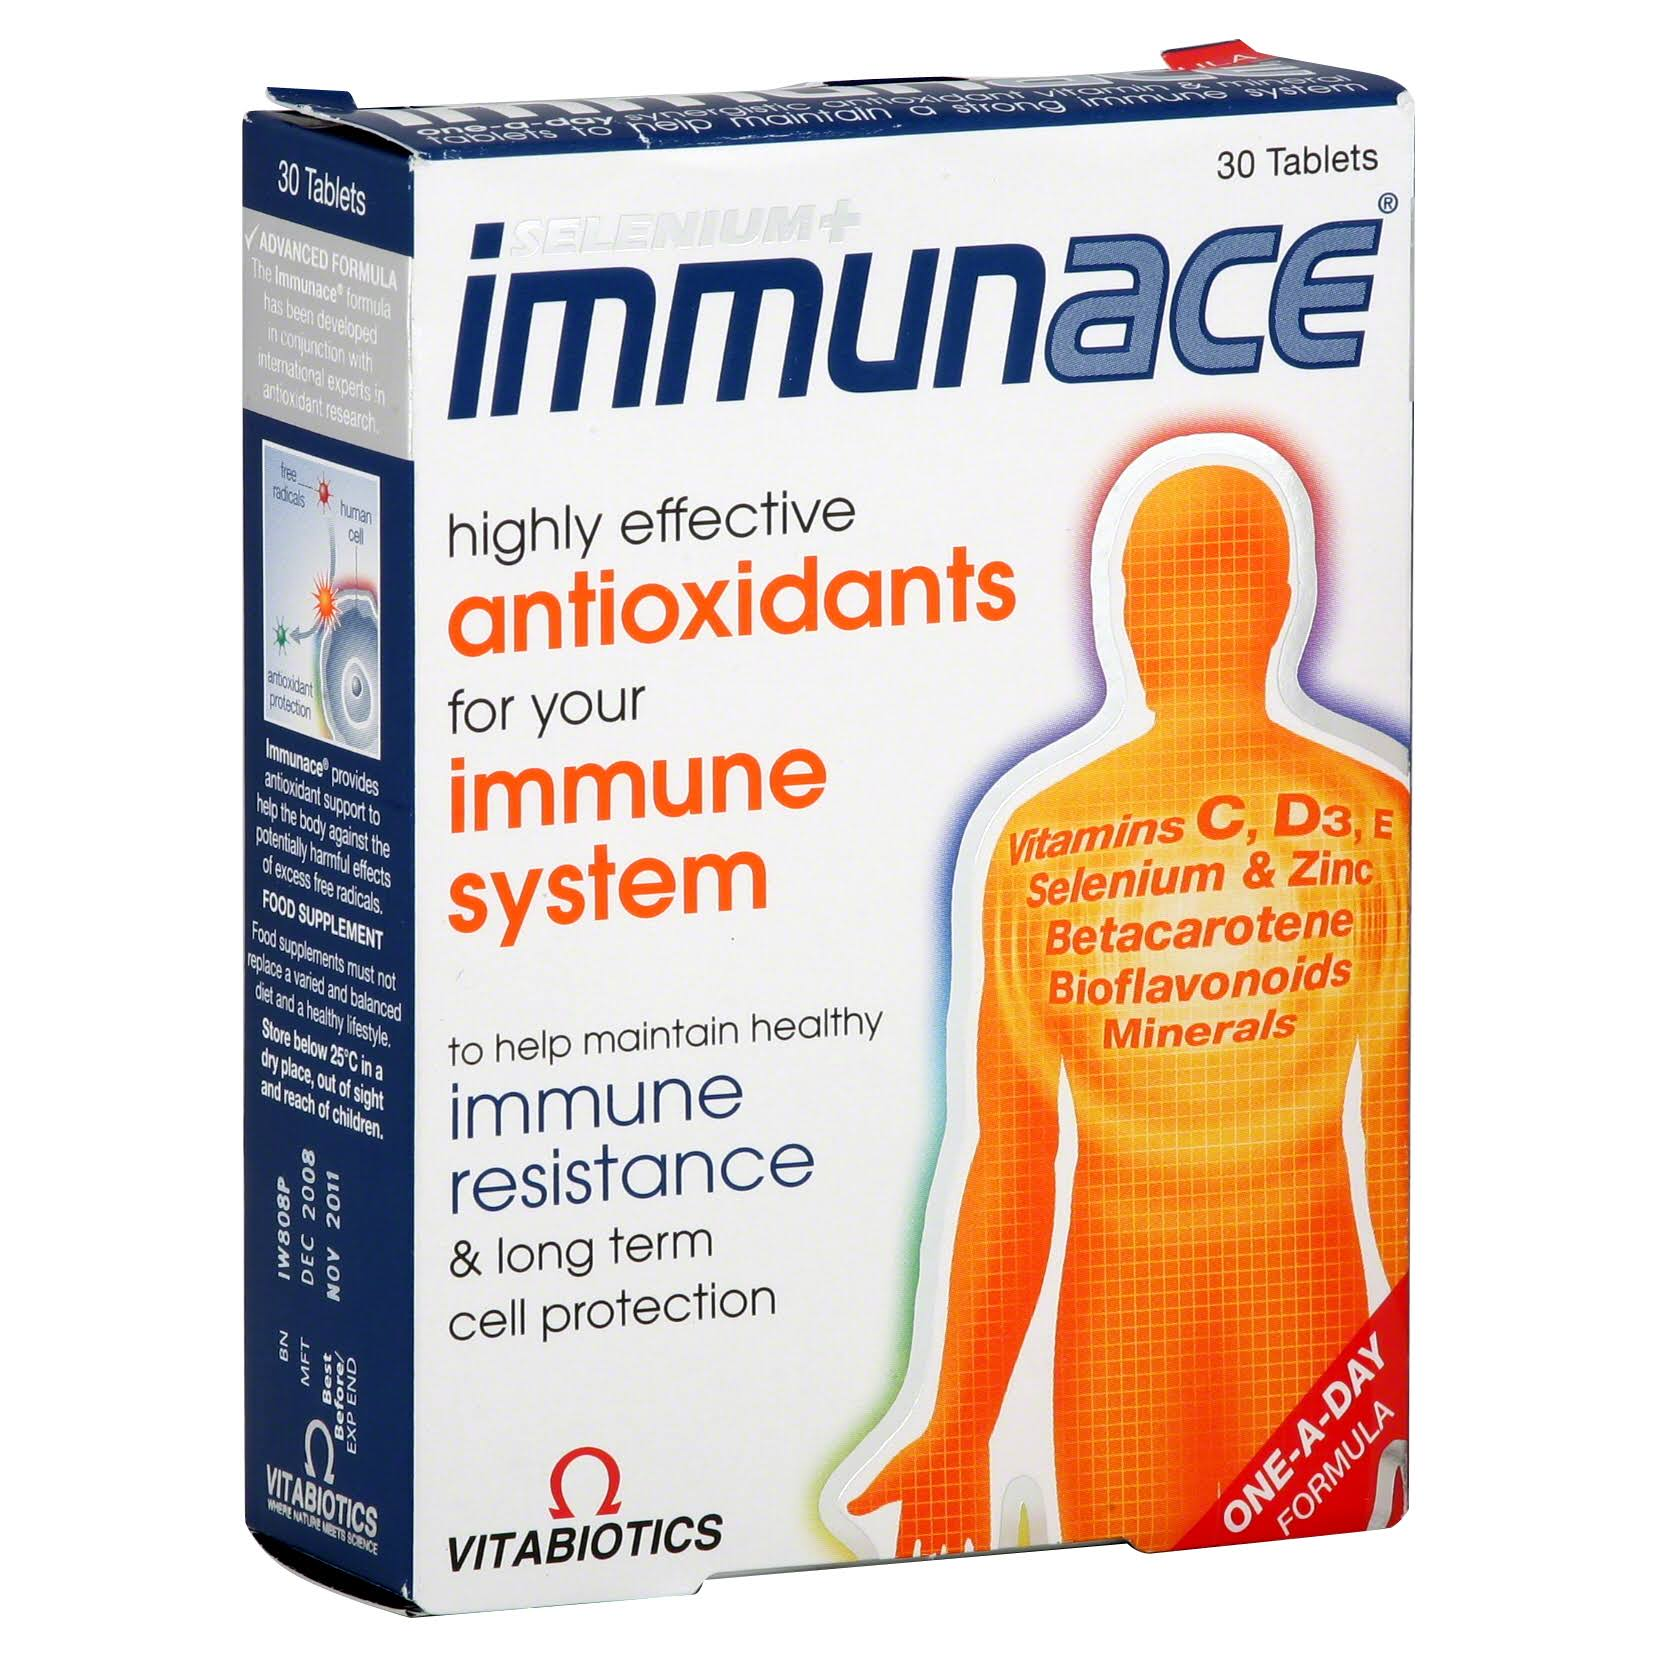 Vitabiotics Immunace Supplement - 30 Tablets